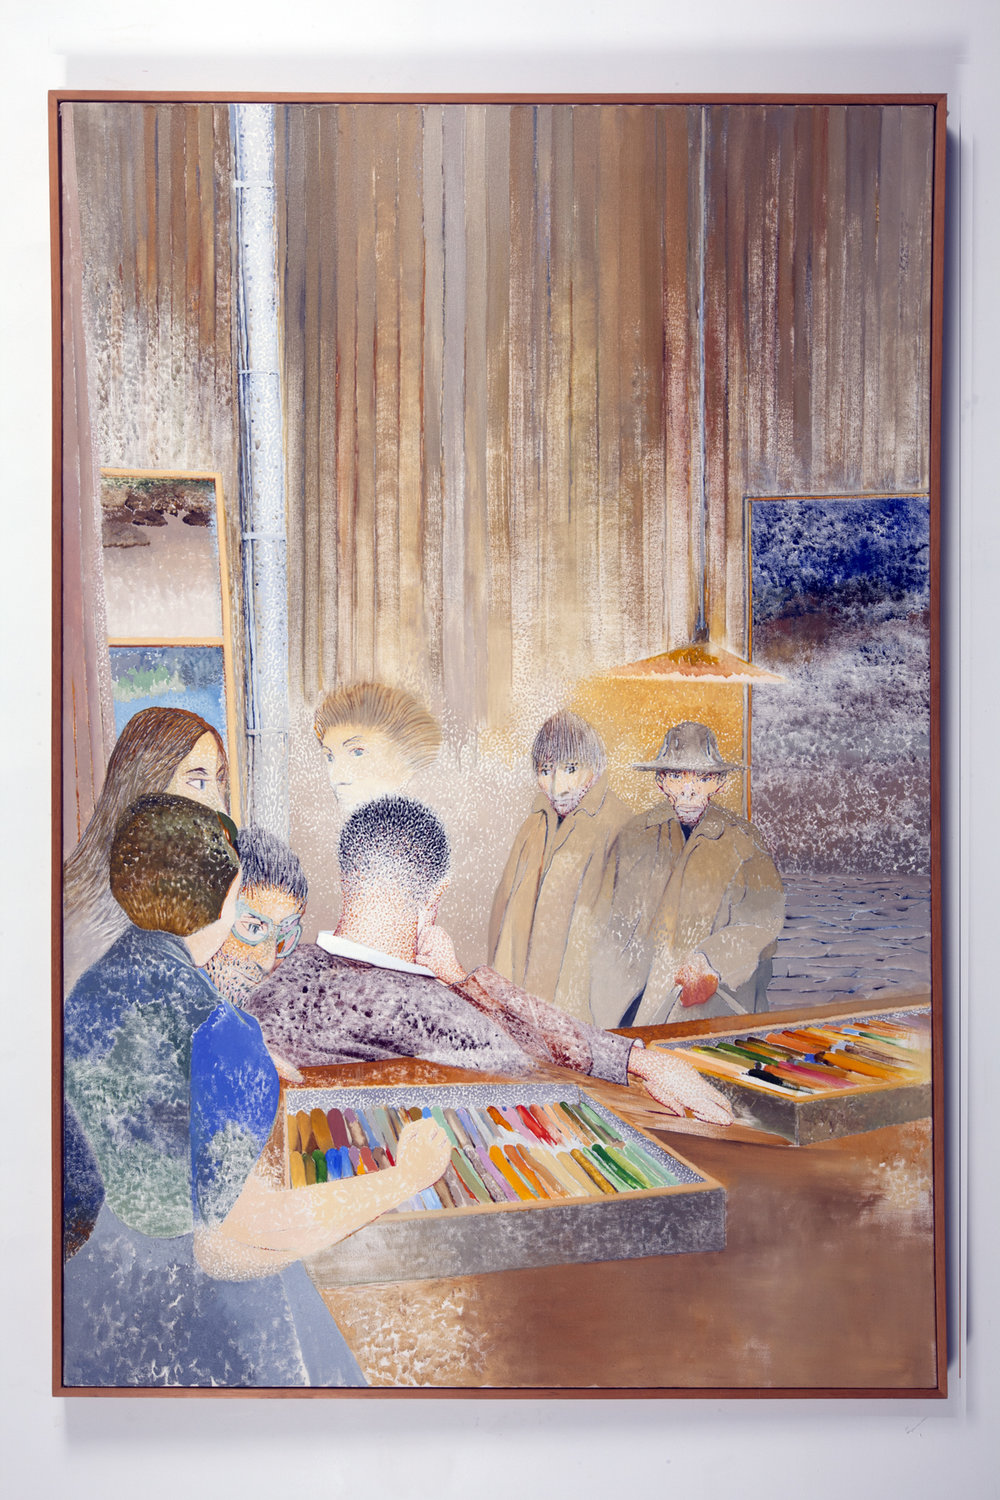 Encounter at the Maison du Pastel (1983)